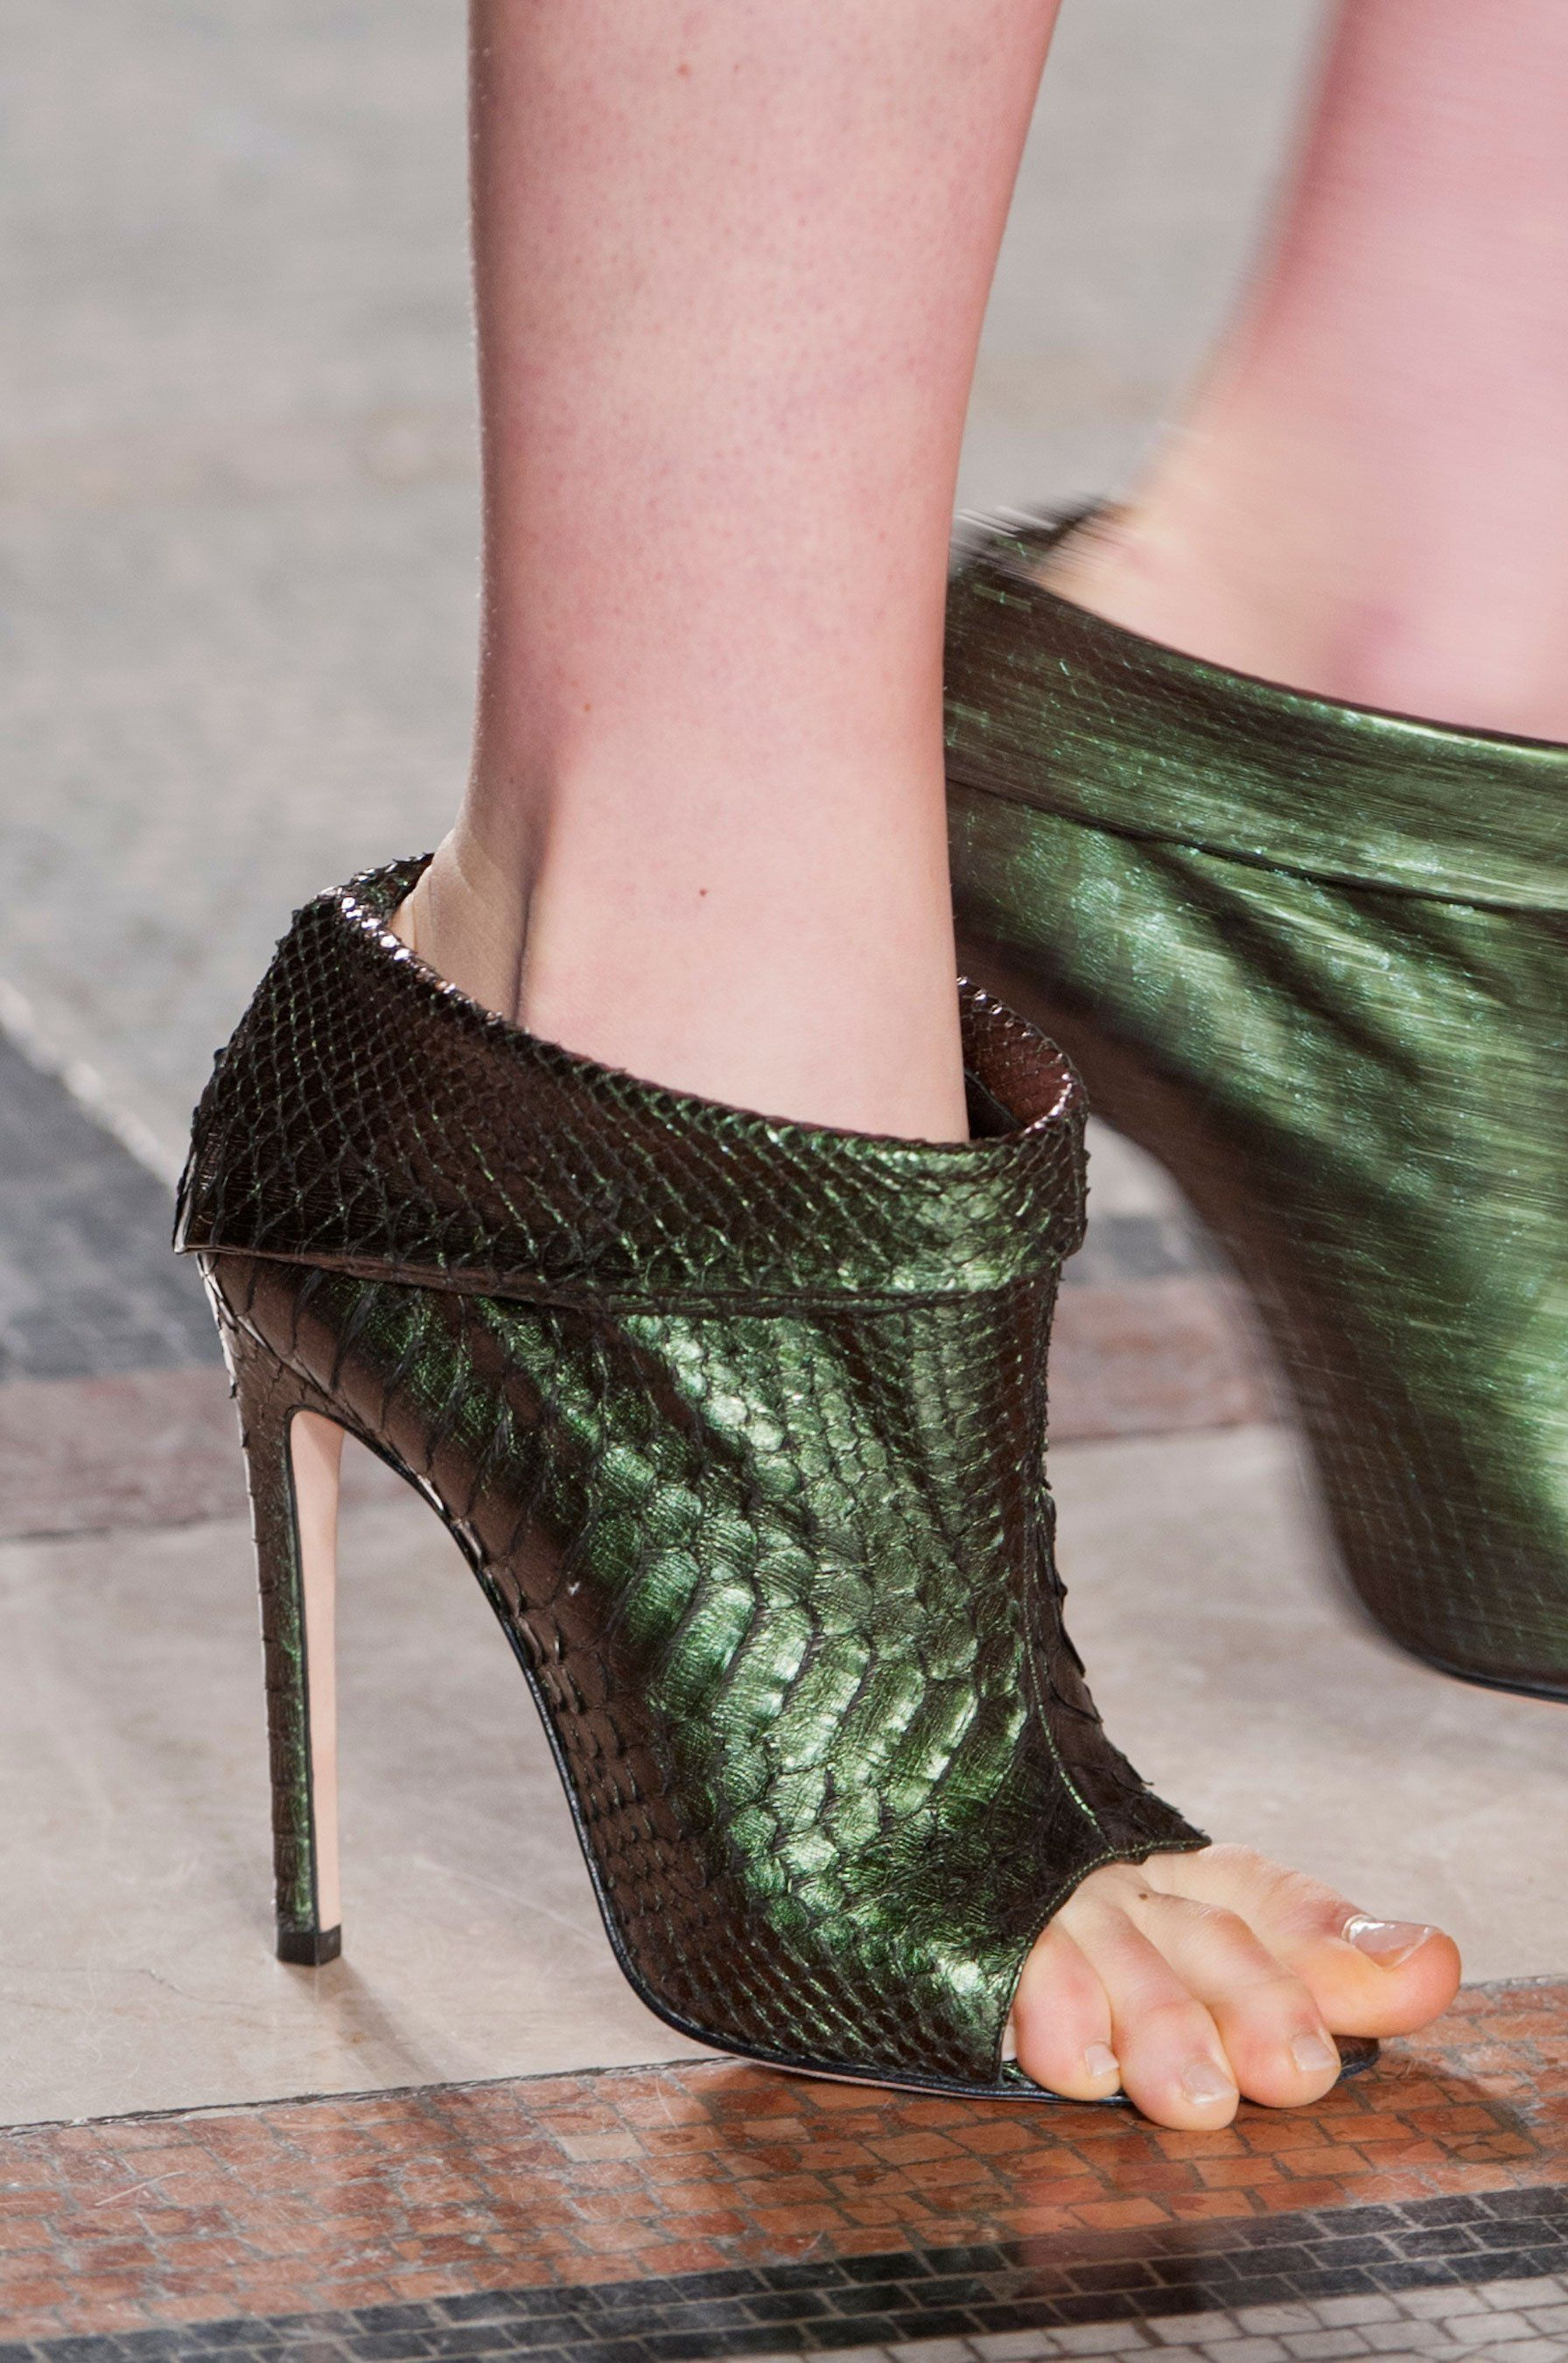 b117966e551916 Julien Macdonald Details A/W '14/Cute Green Shoes, but a size larger  because her toes are hanging out. This is a problem for women with narrow  feet like ...